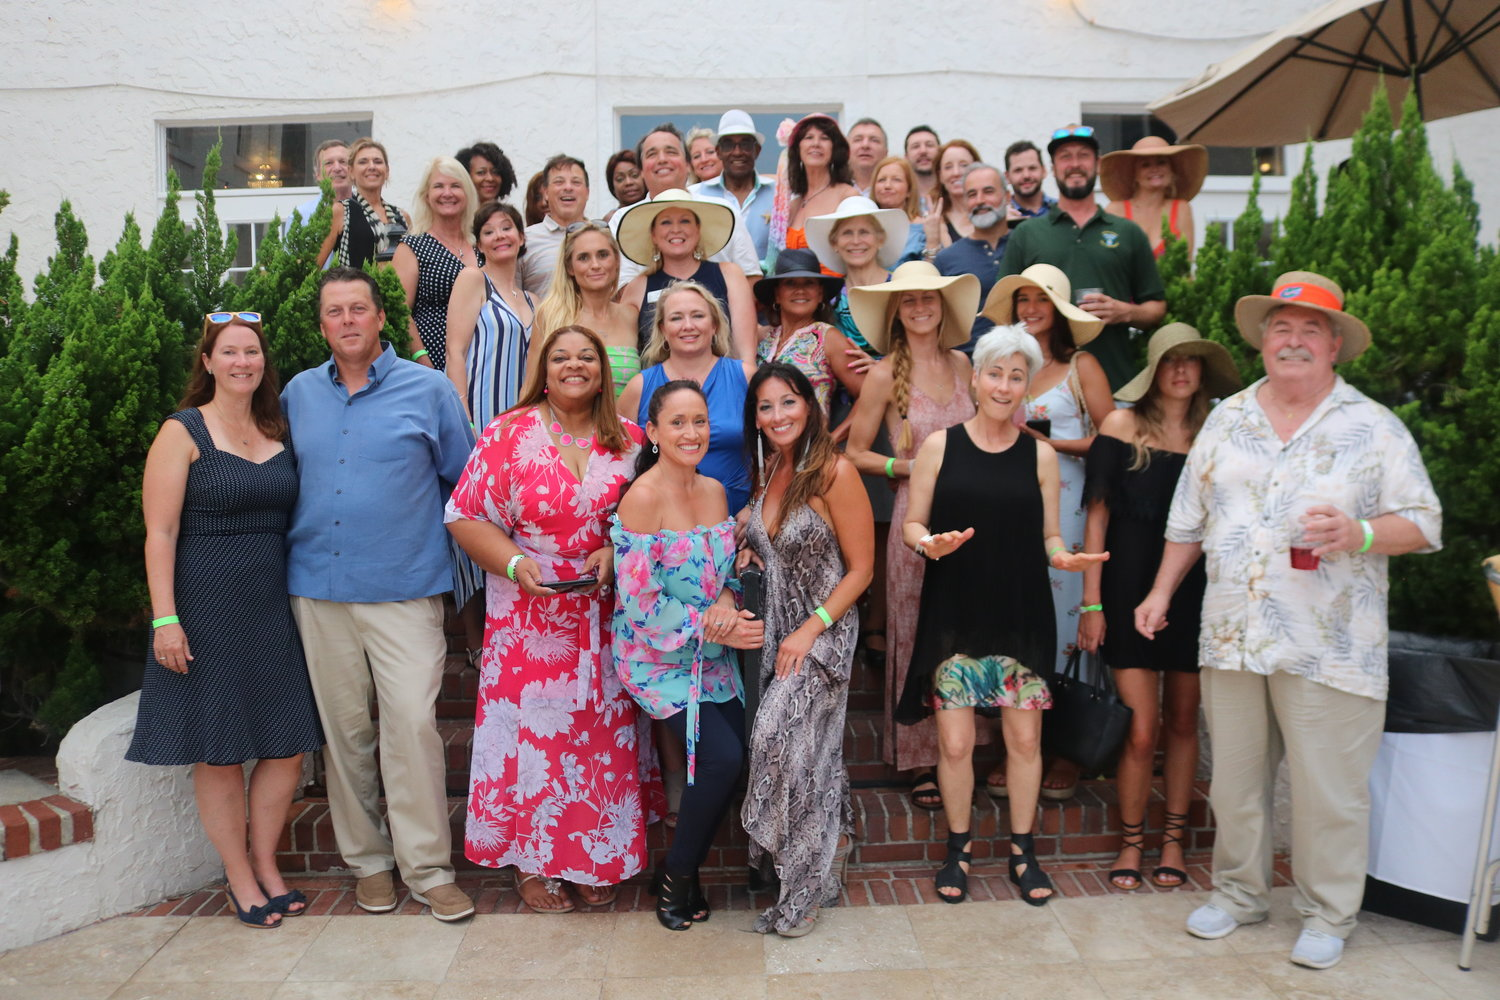 Sterling's Summer Pier Dance was hosted at the Casa Marina Hotel beachfront courtyard on June 4 to benefit the Beaches Emergency Assistance Ministry (BEAM) organization.